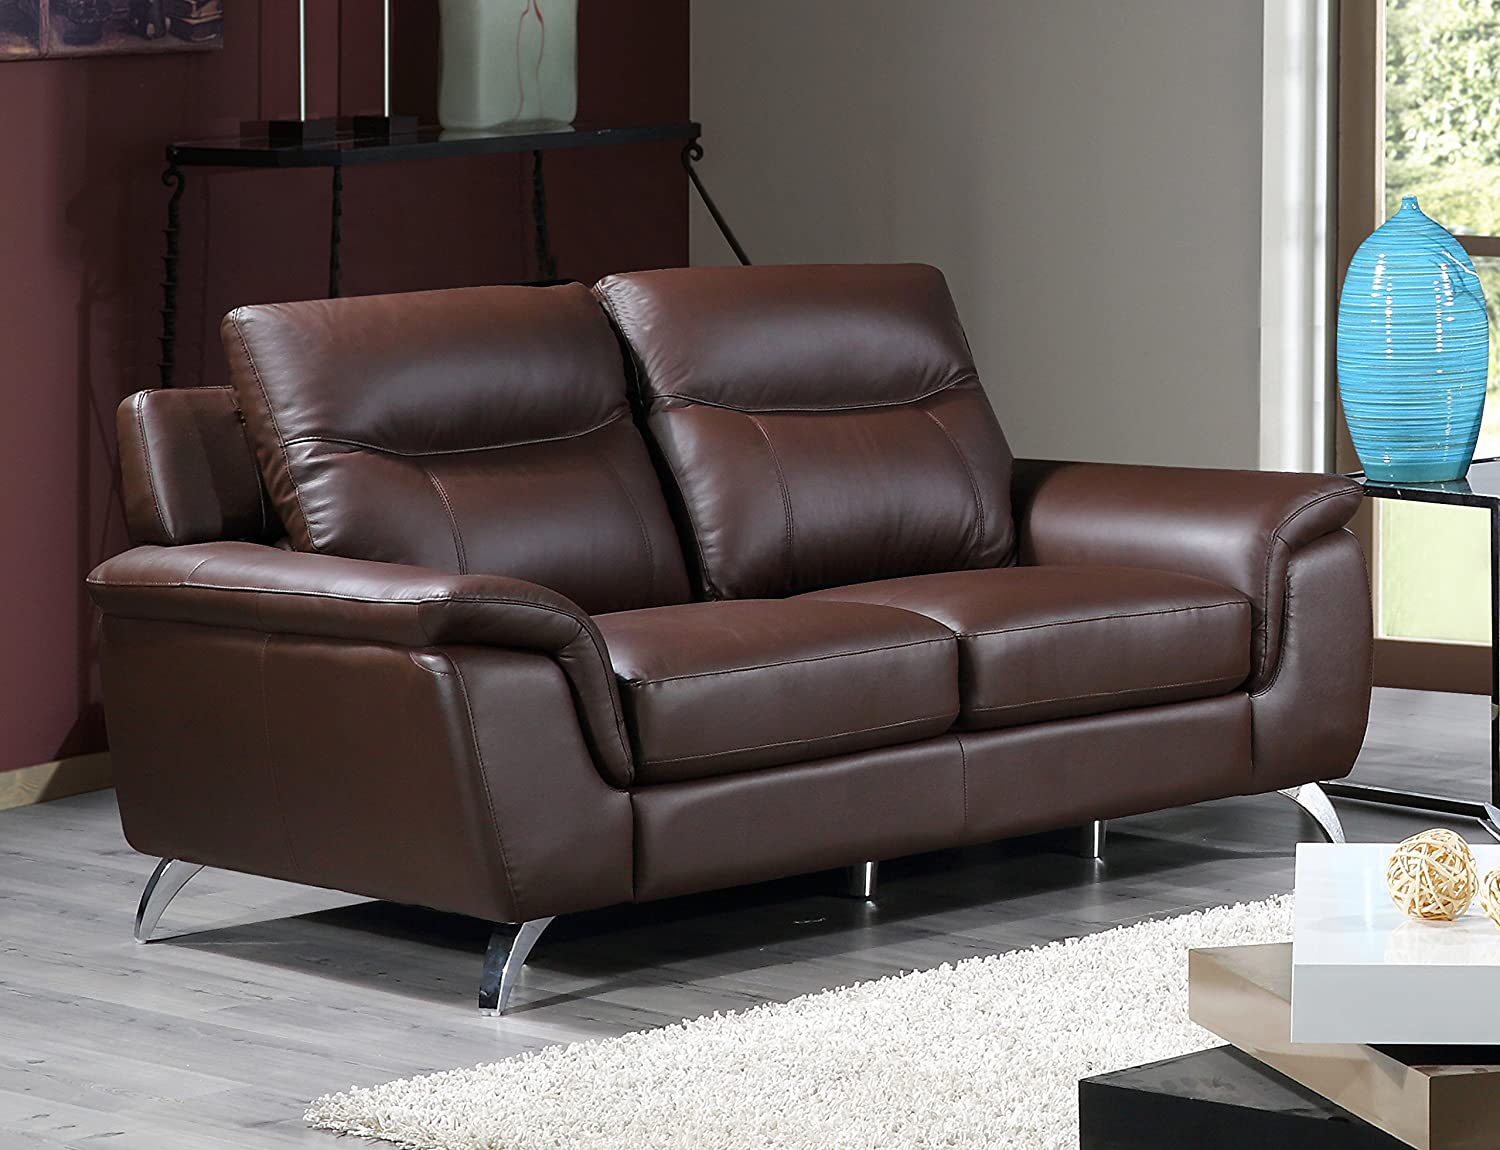 amazoncom cortesi home chicago genuine leather sofa u0026 loveseat set brown home u0026 kitchen